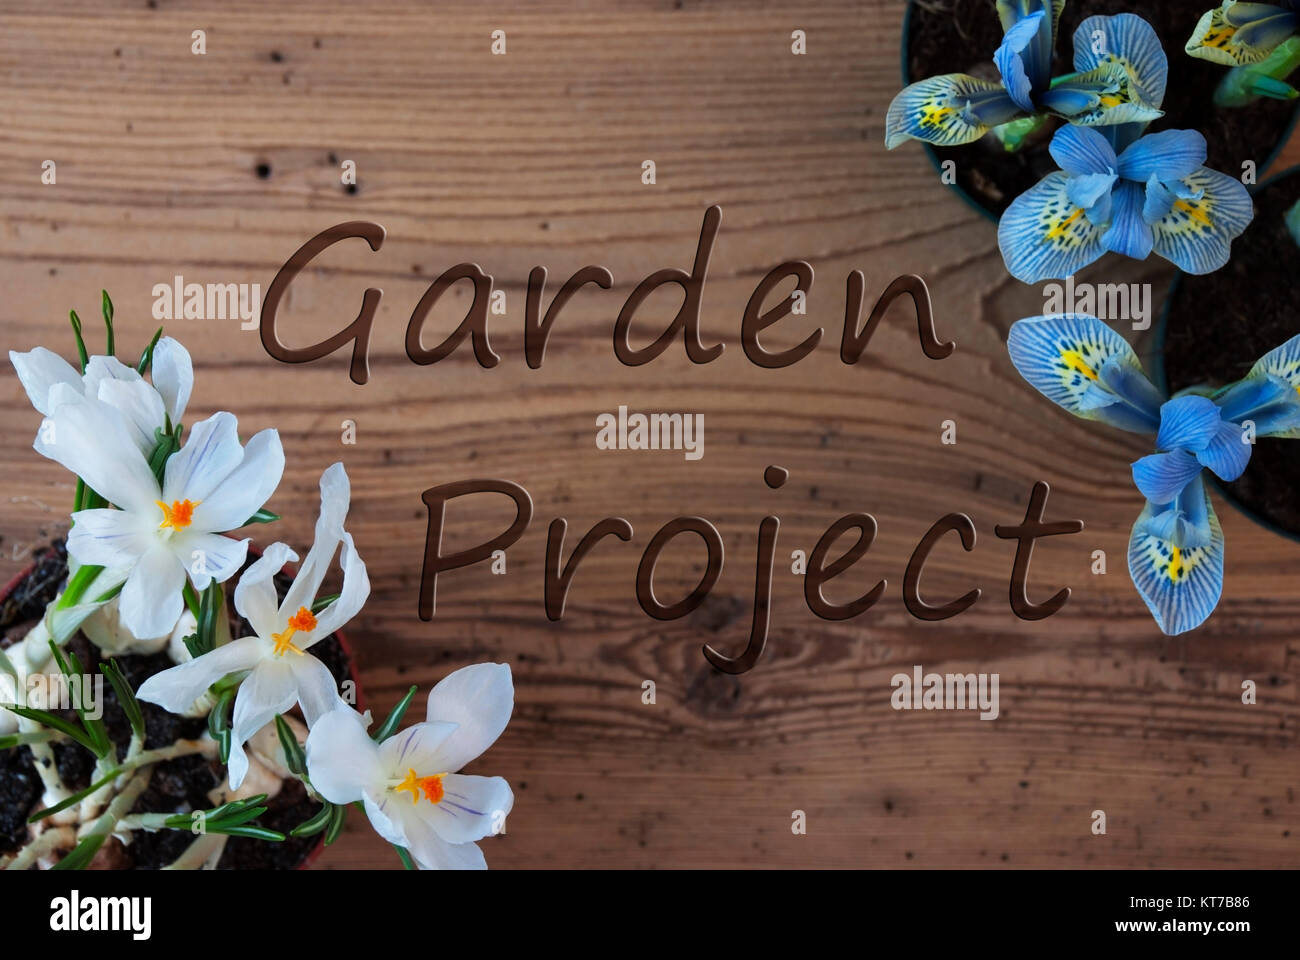 Garden Project Stock Photos & Garden Project Stock Images - Alamy